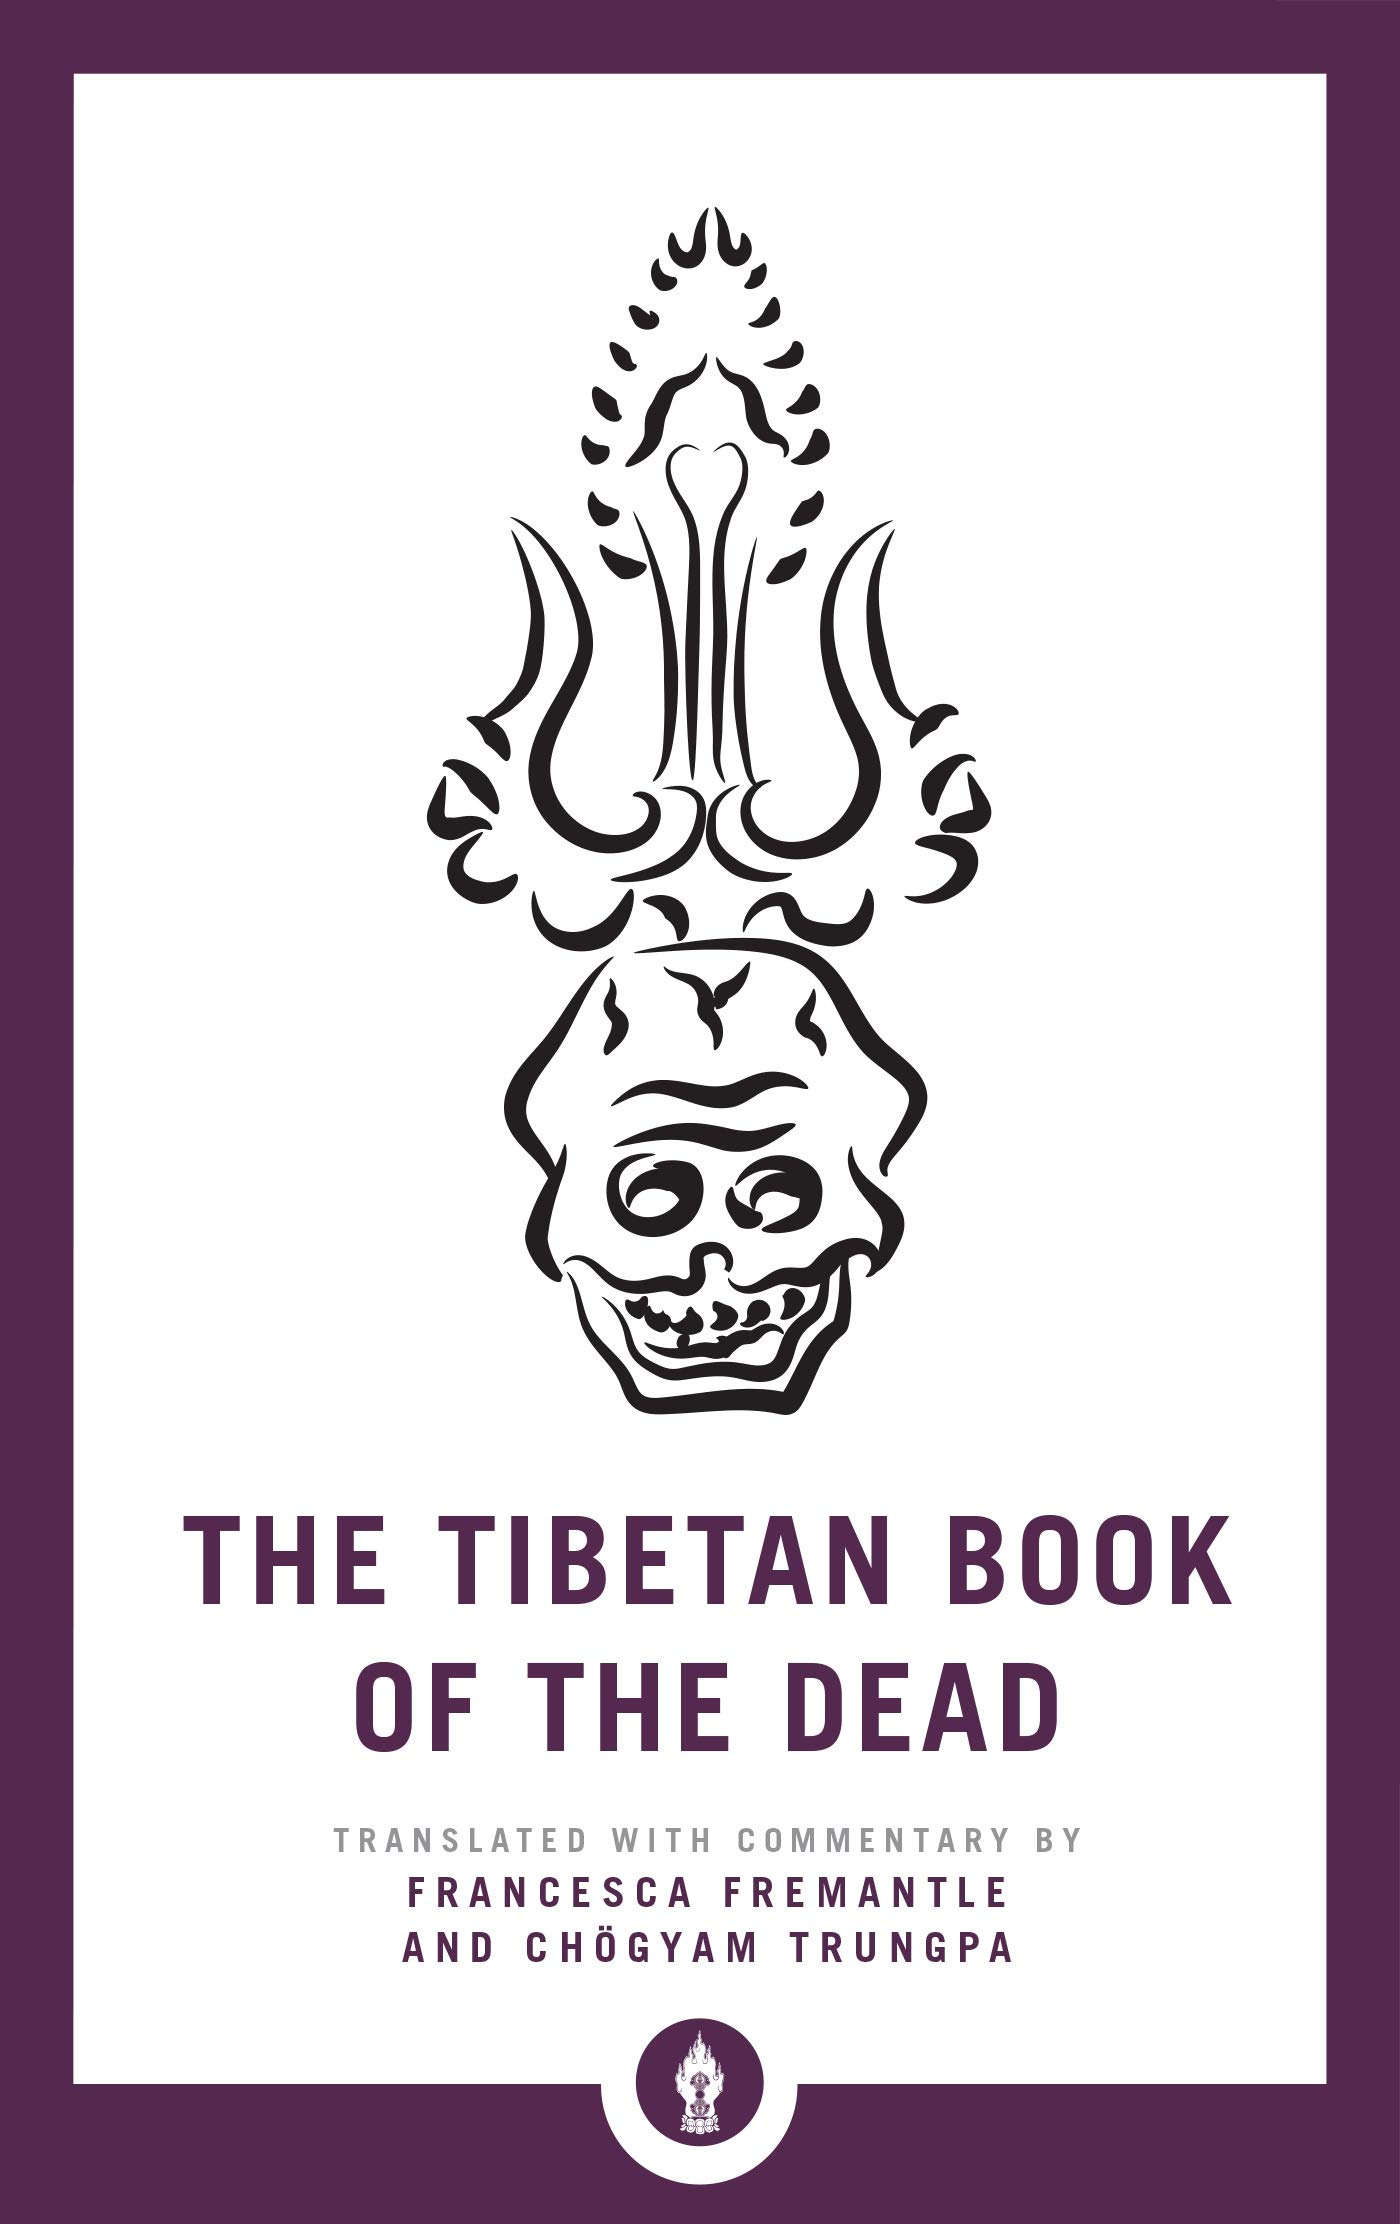 Trungpa Book of Dead cover art